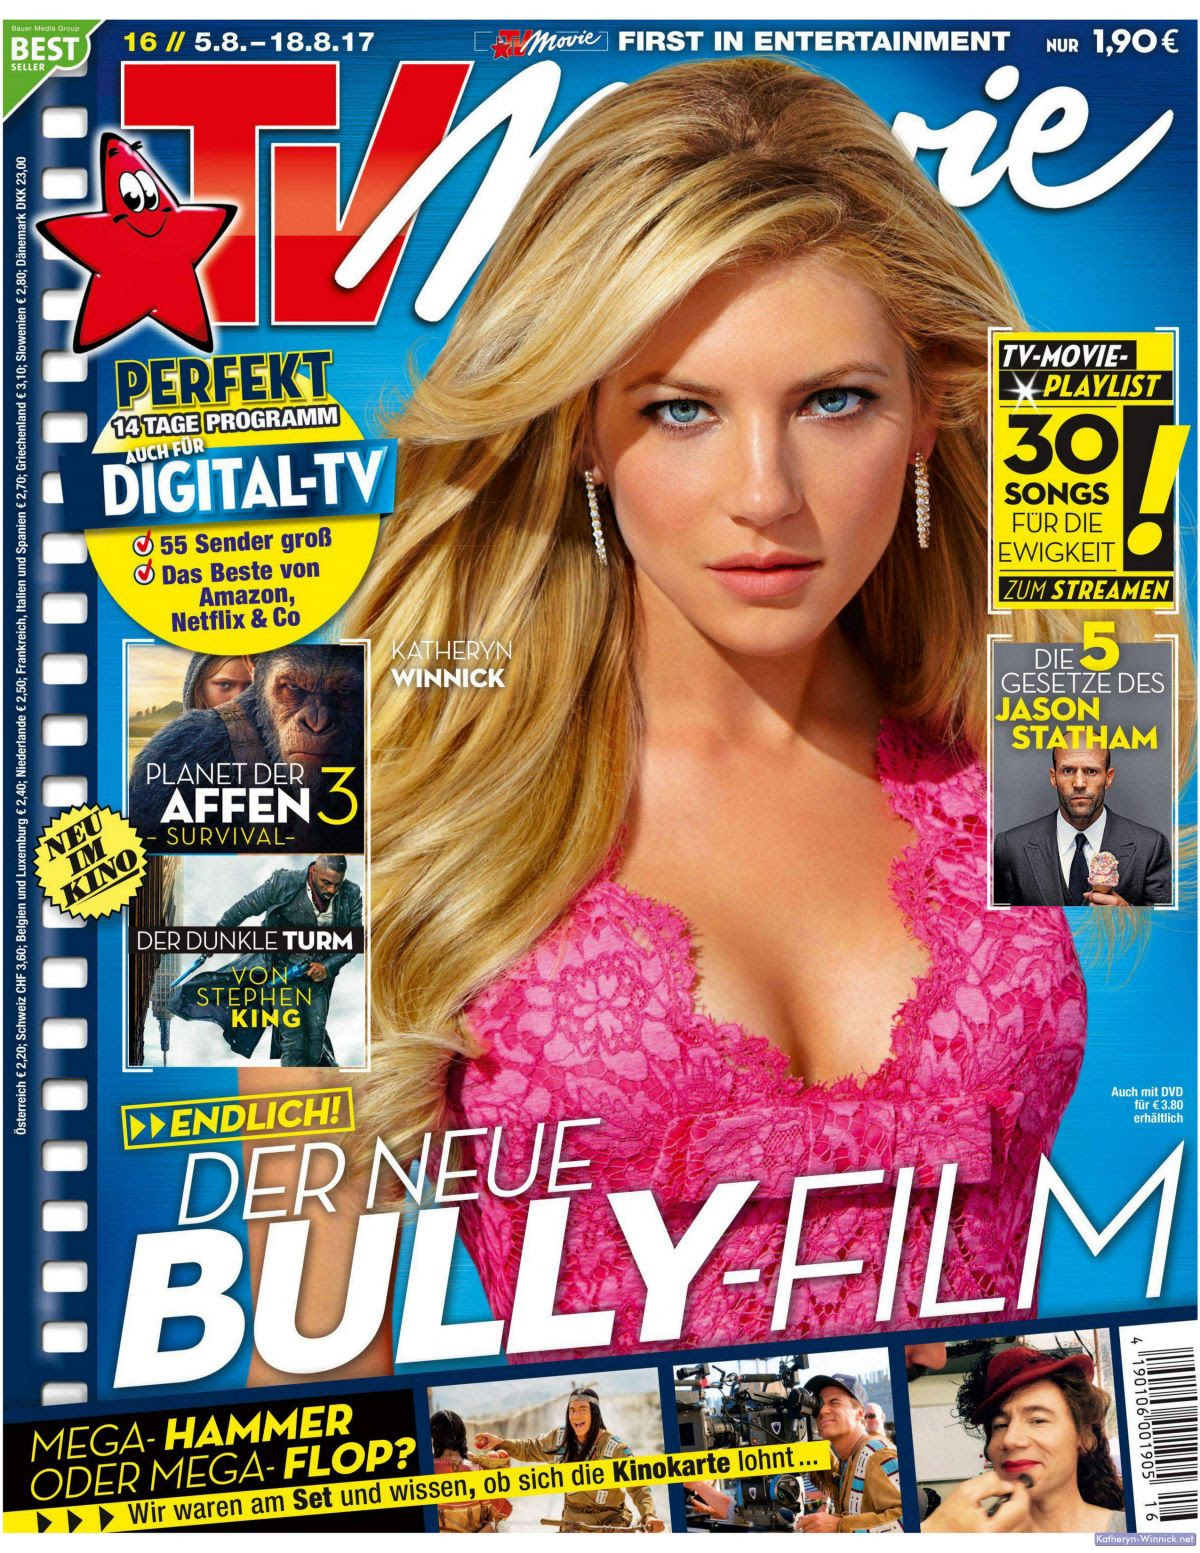 KATHERYN WINNICK in TV/Movie Magazine, 5th August 2017